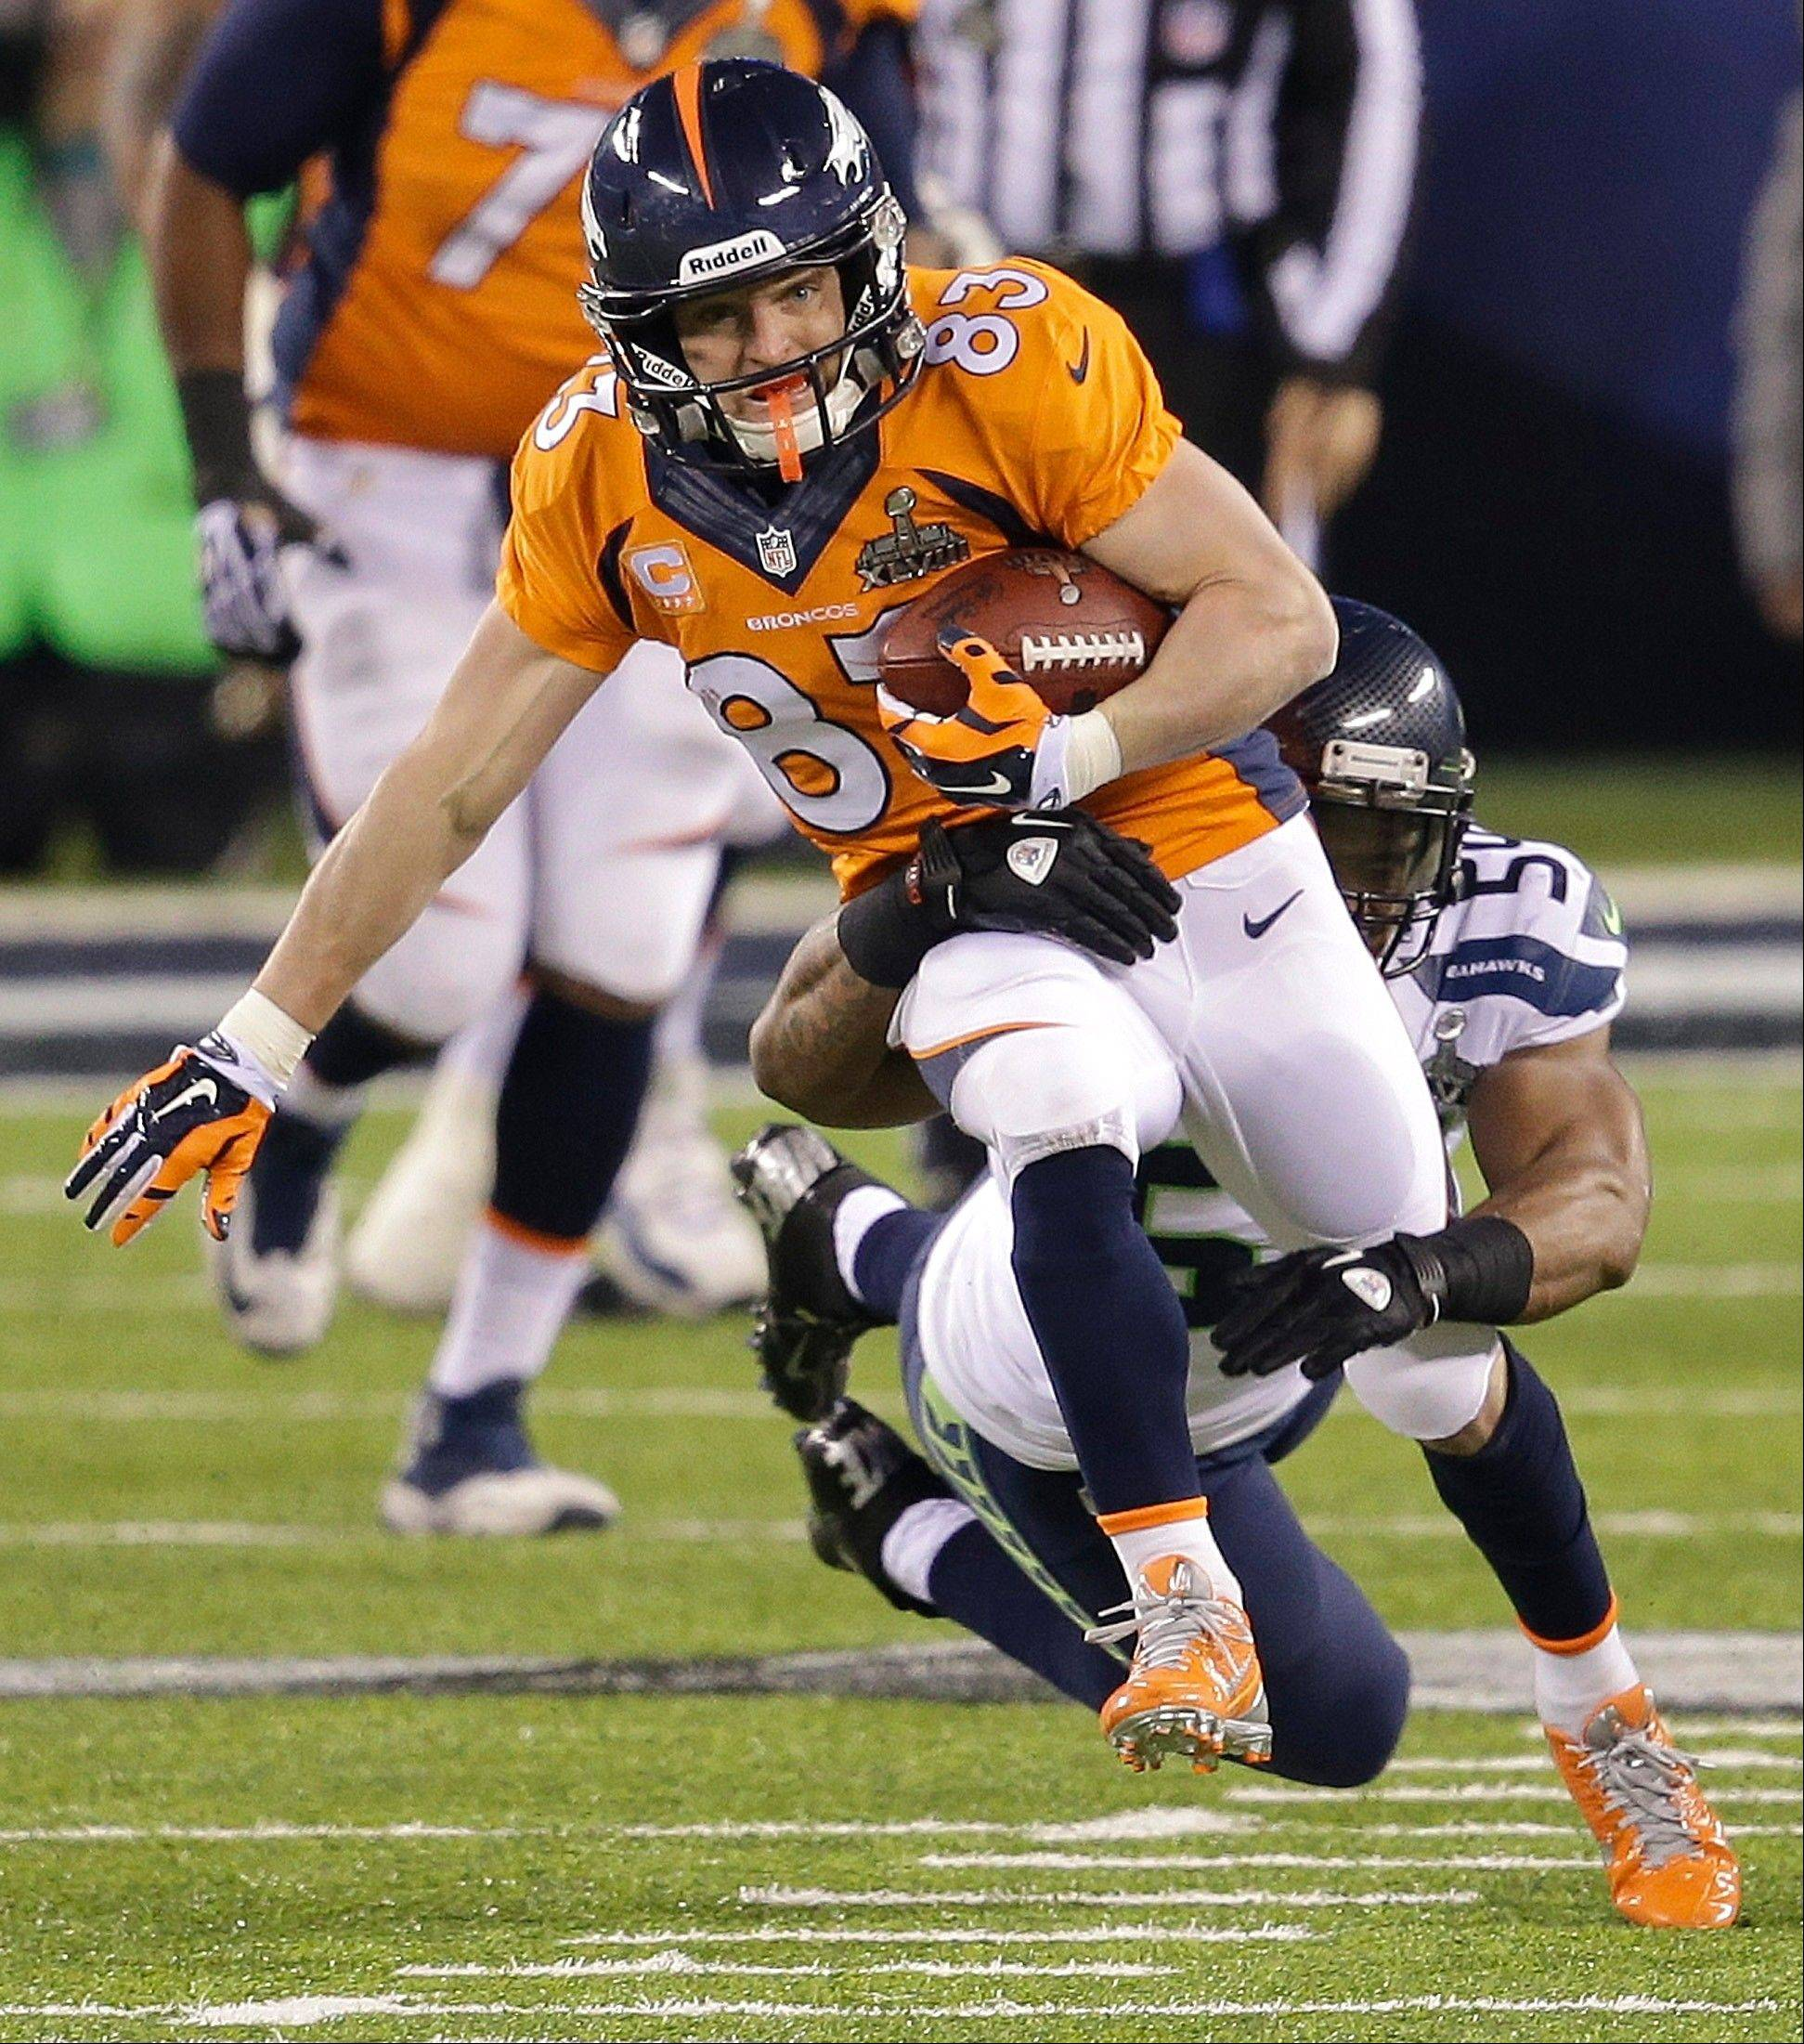 Denver Broncos wide receiver Wes Welker (83) is tackled by Seattle Seahawks middle linebacker Bobby Wagner (54) during the second half.